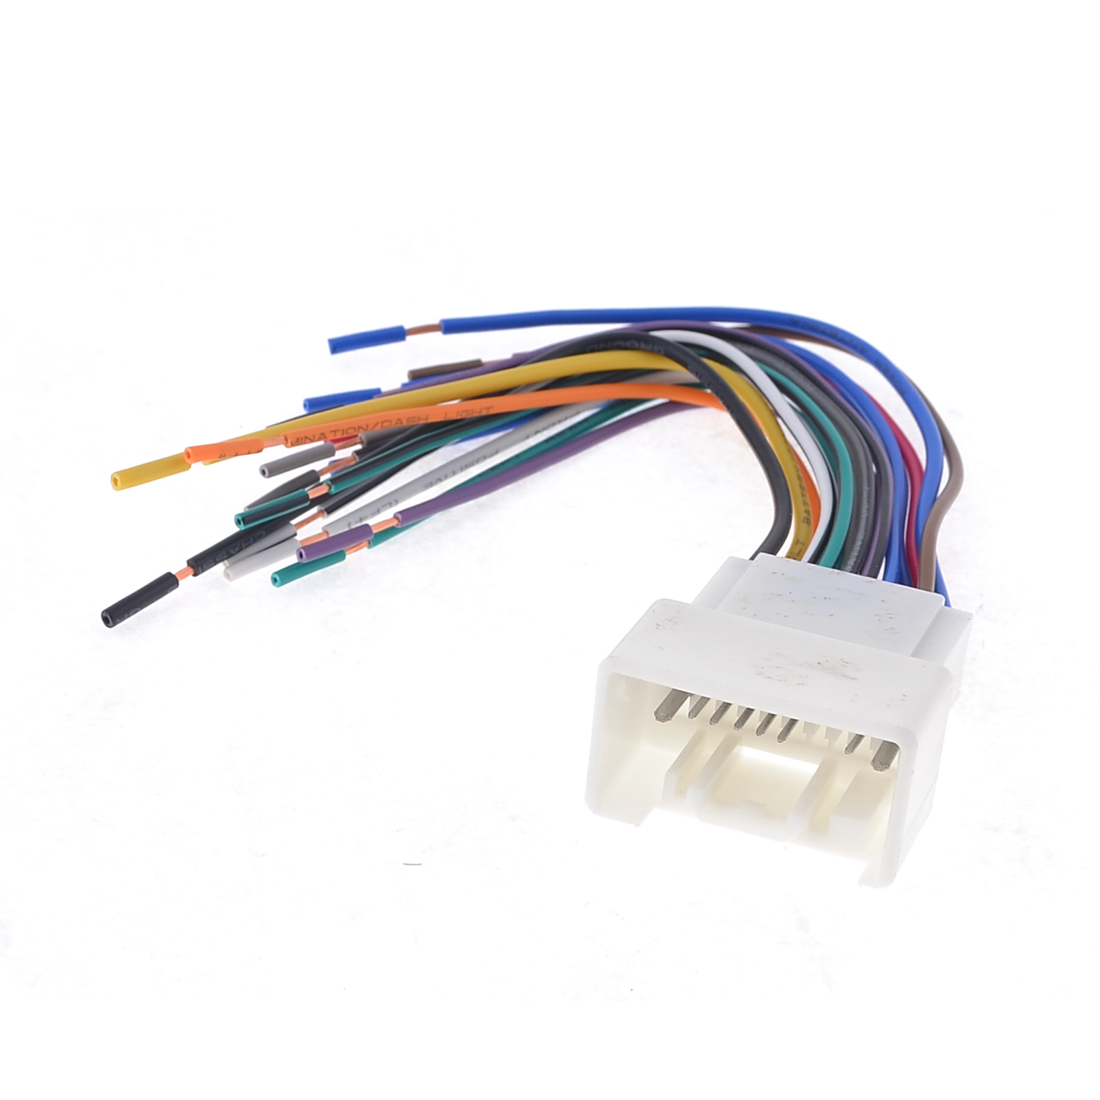 Vehicle Car CD Stereo Male Connector Wiring Harness 18cm Length for Outlander